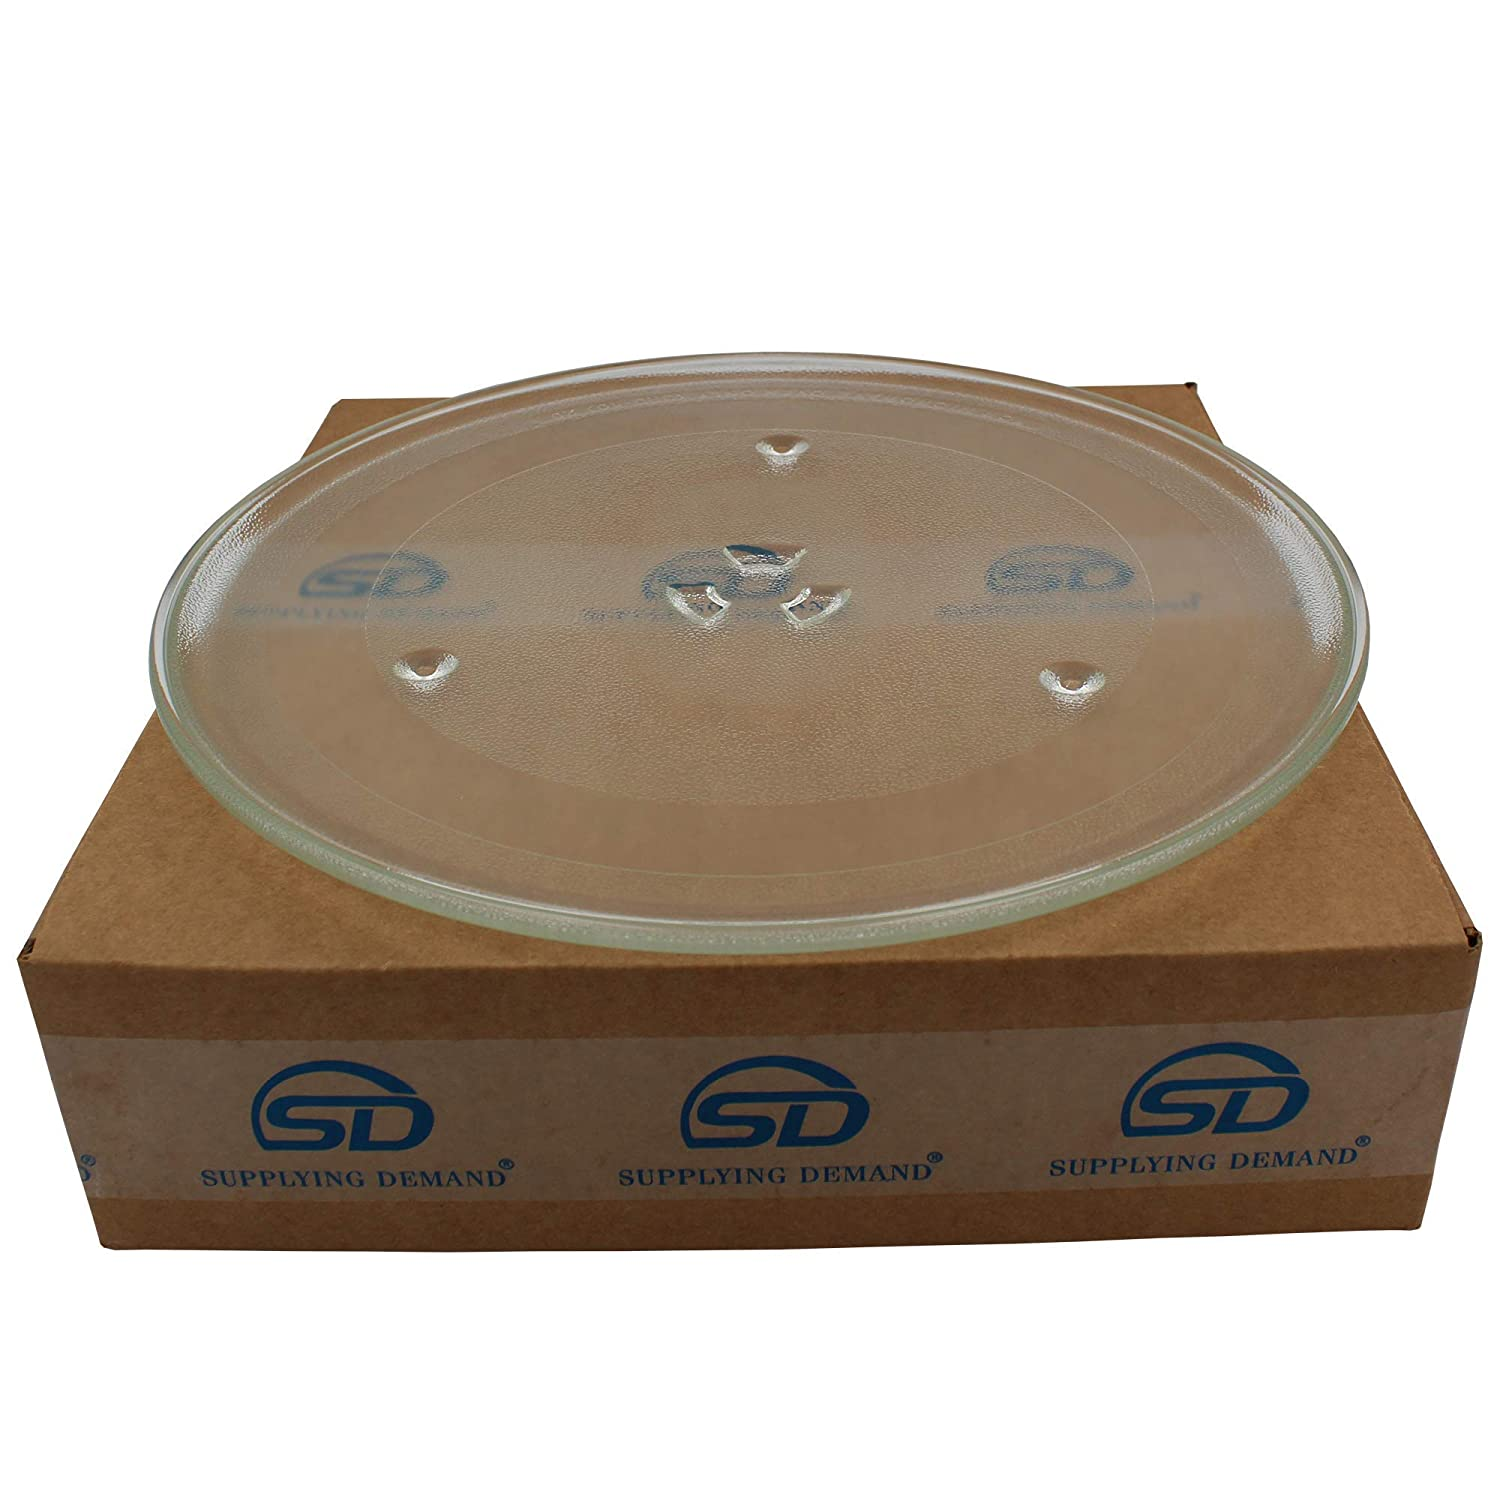 Supplying Demand DE74-20015B Microwave Glass 12.5 Inch Plate Tray DE74-20015B DE74-20015A